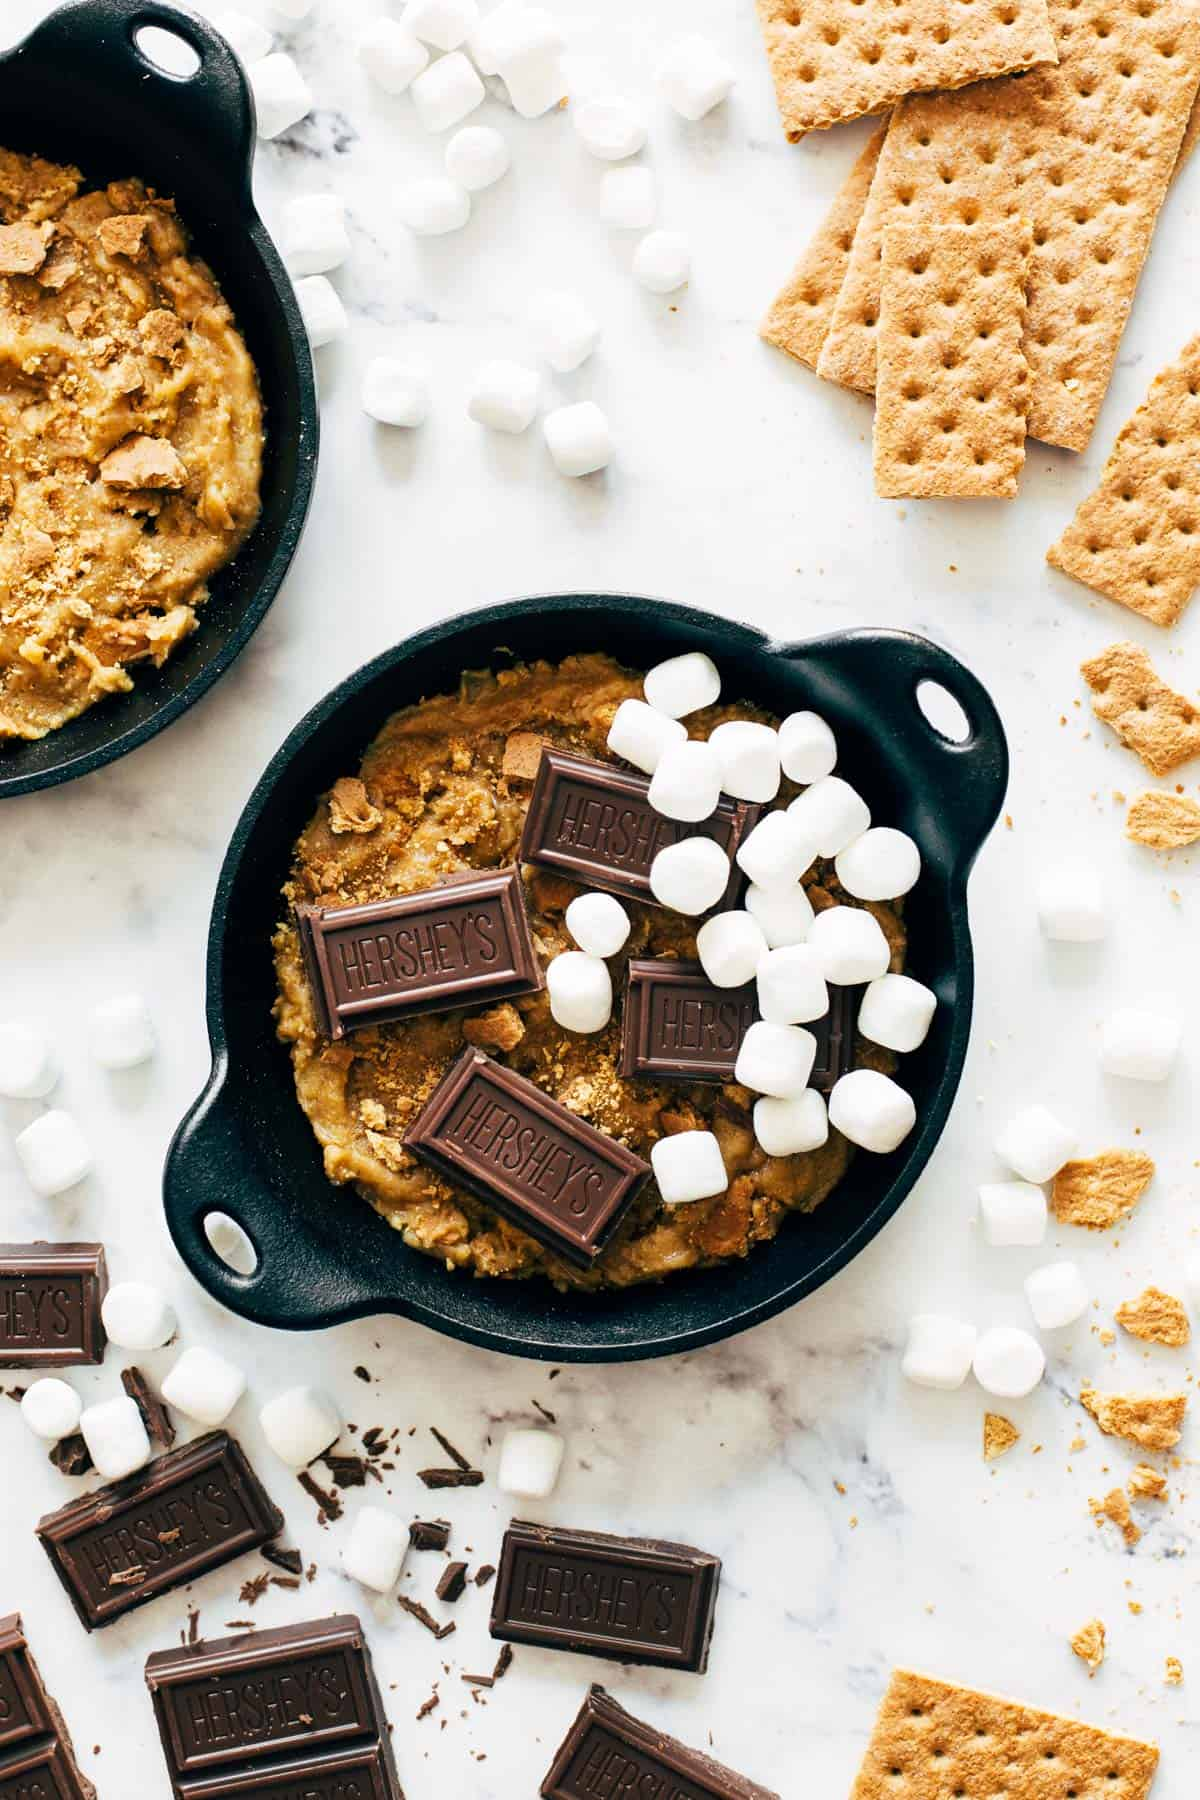 S'mores bowls before baking.